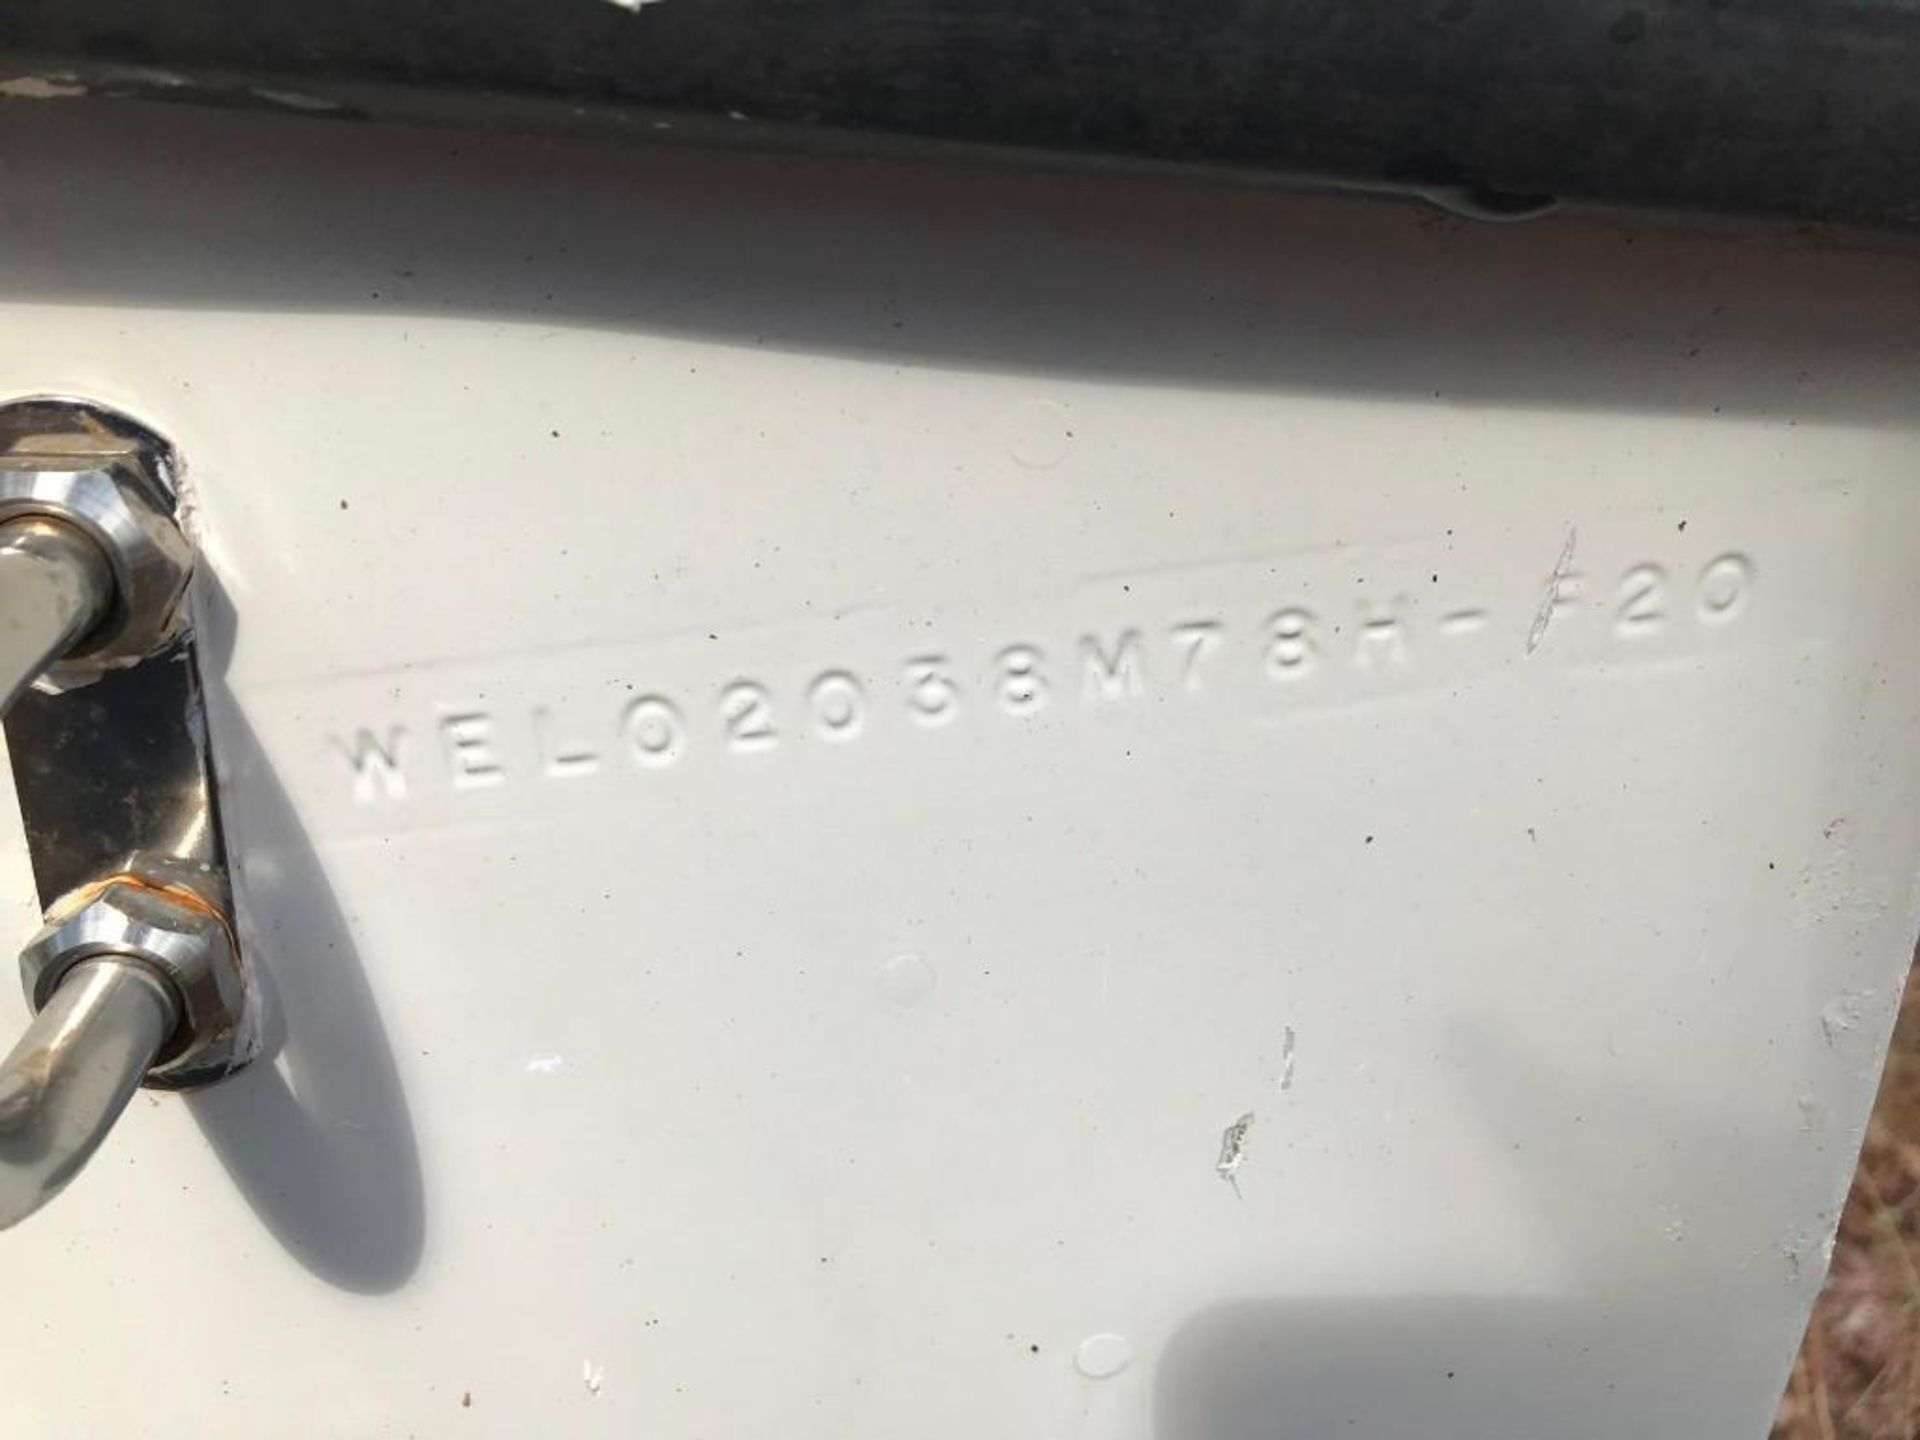 1972 WELLCRAFT F20 BOAT HULL - Image 4 of 8